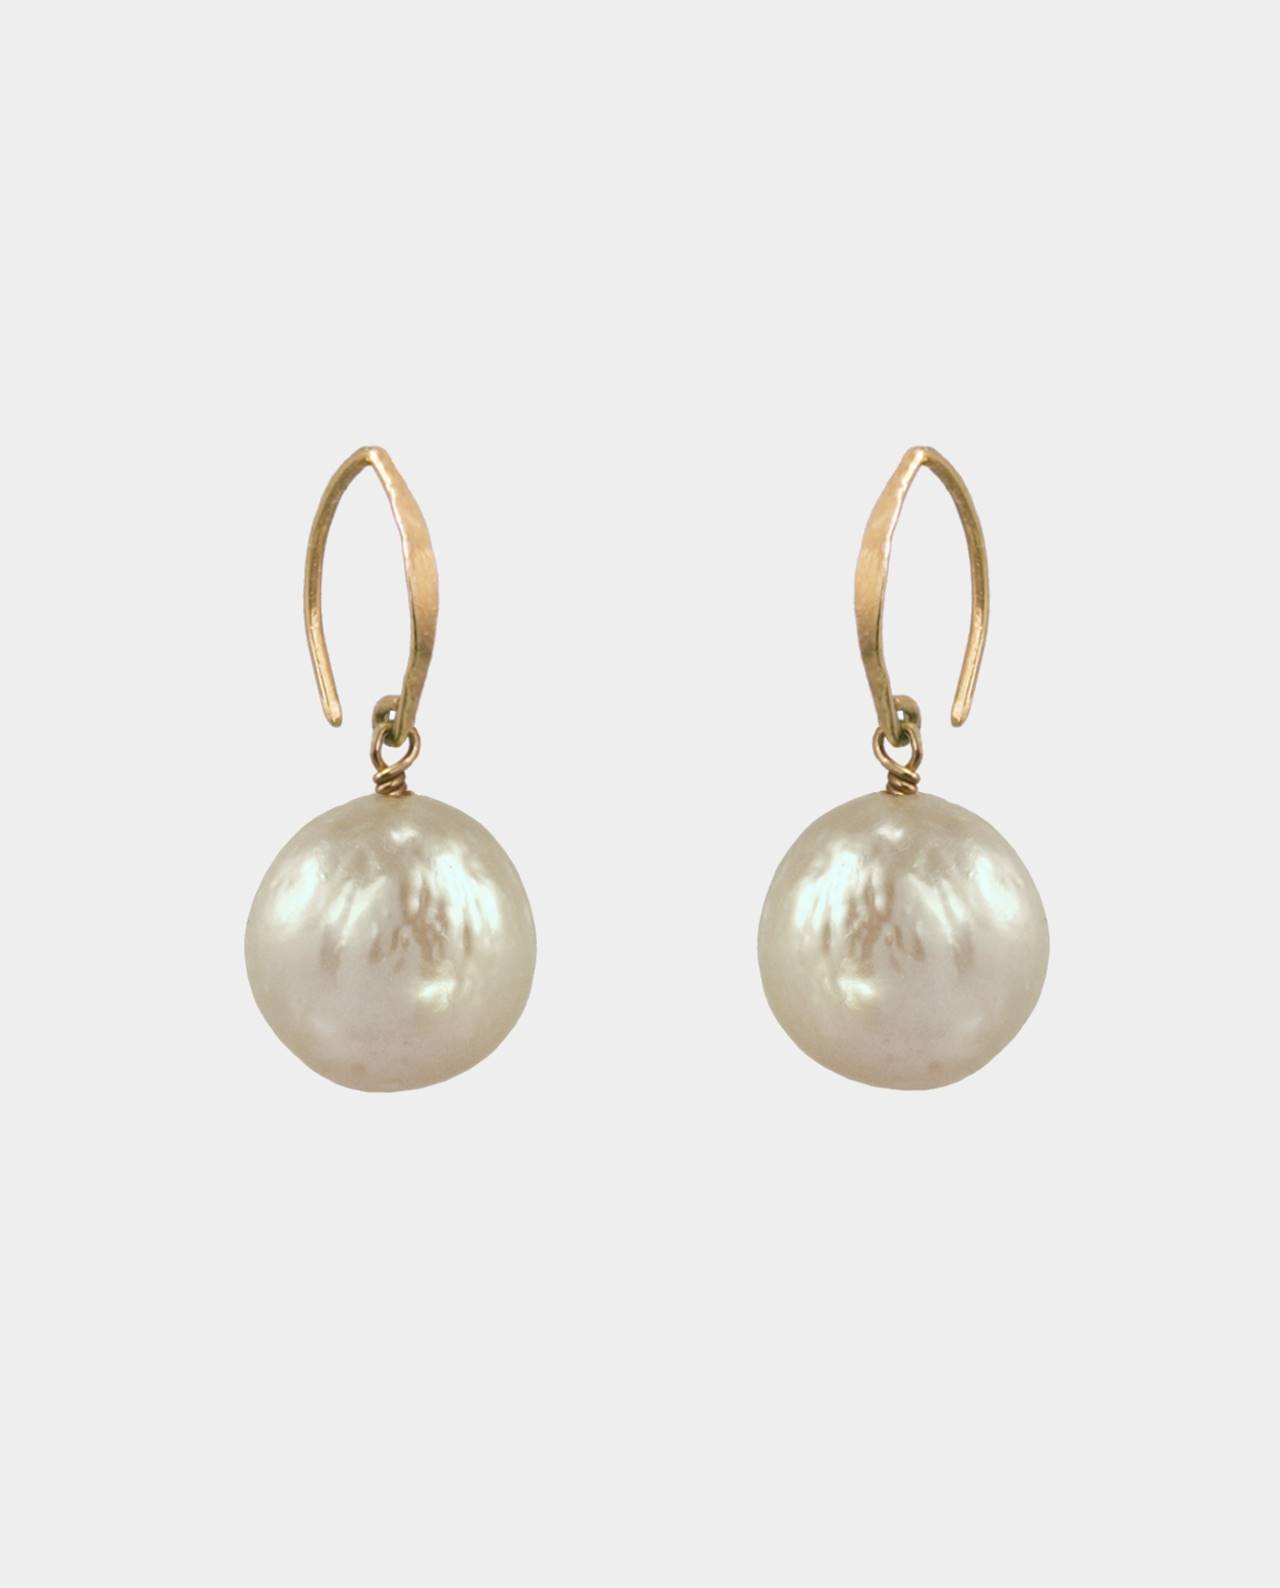 Earrings with golden circular pearls and pointy rustic ear hooks that contrast with the mode of expression of the precious metal and shapes a piece of jewelry with patina